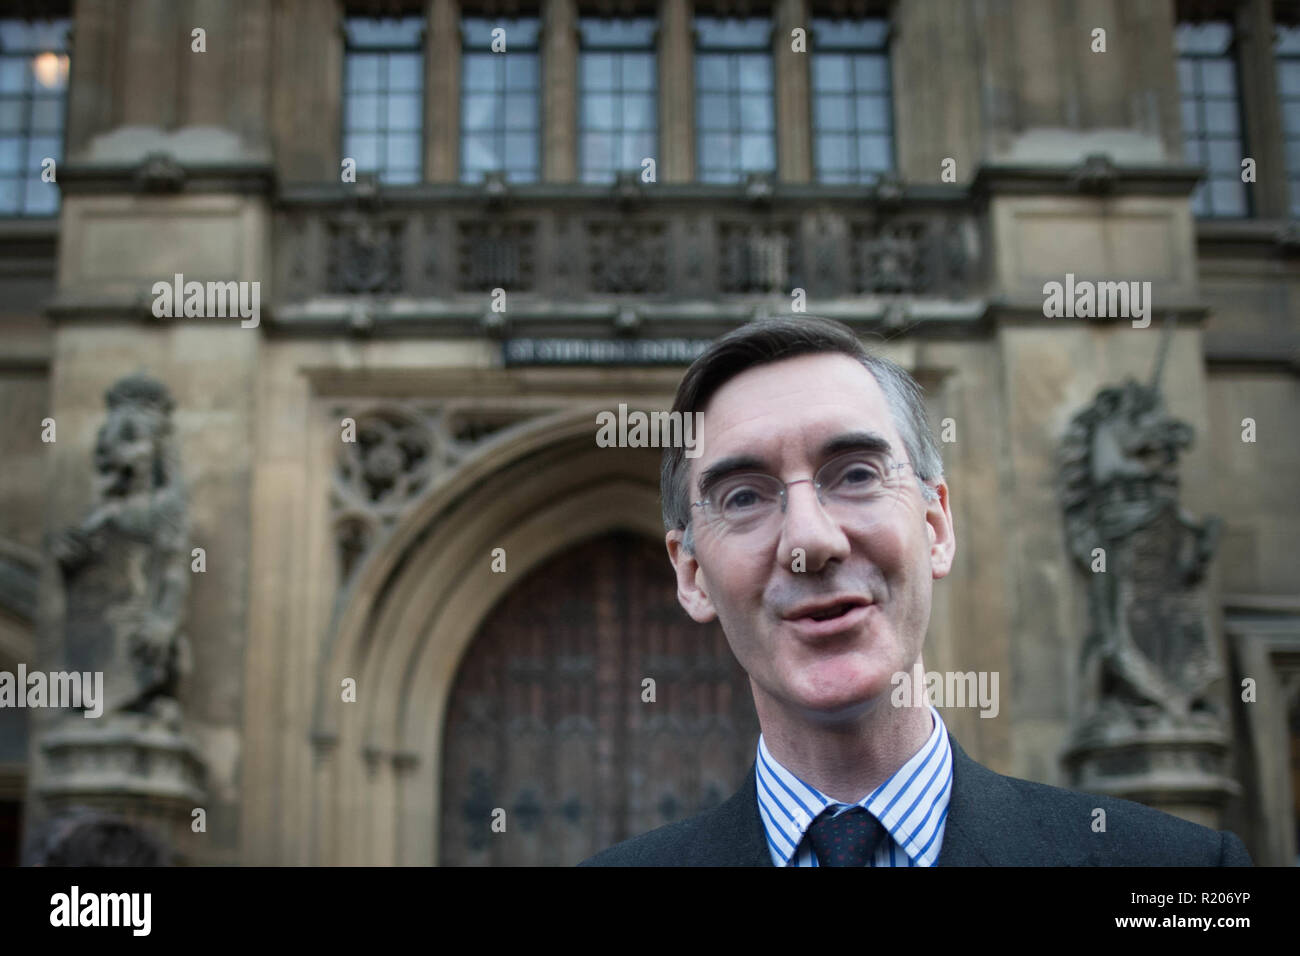 Conservative MP Jacob Rees-Mogg speaking outside the House